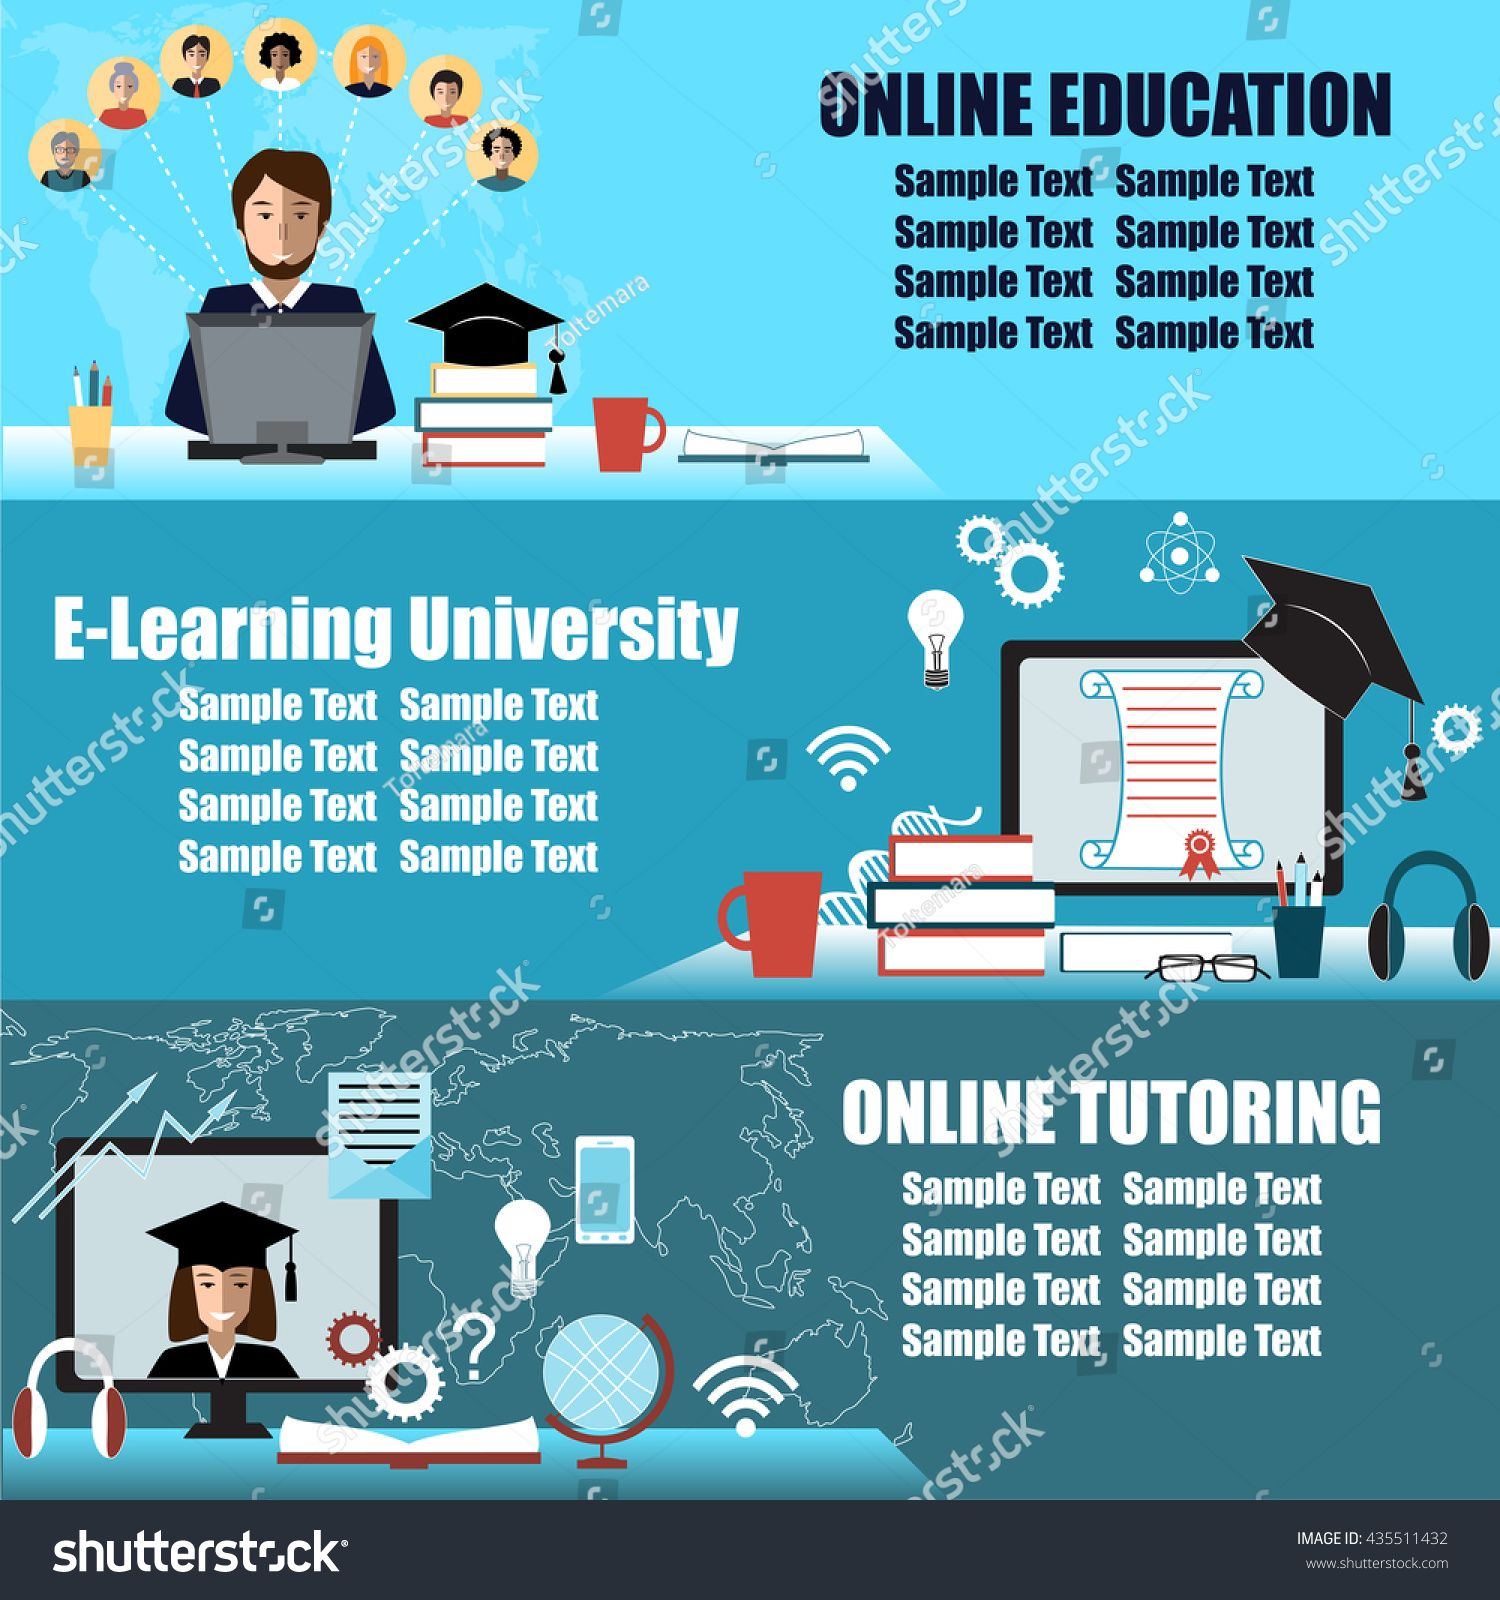 Banner Or Flier Design For Online Education Event E Learning Distance Education Or Virtual University Backg Online Education Online Tutoring Online Learning